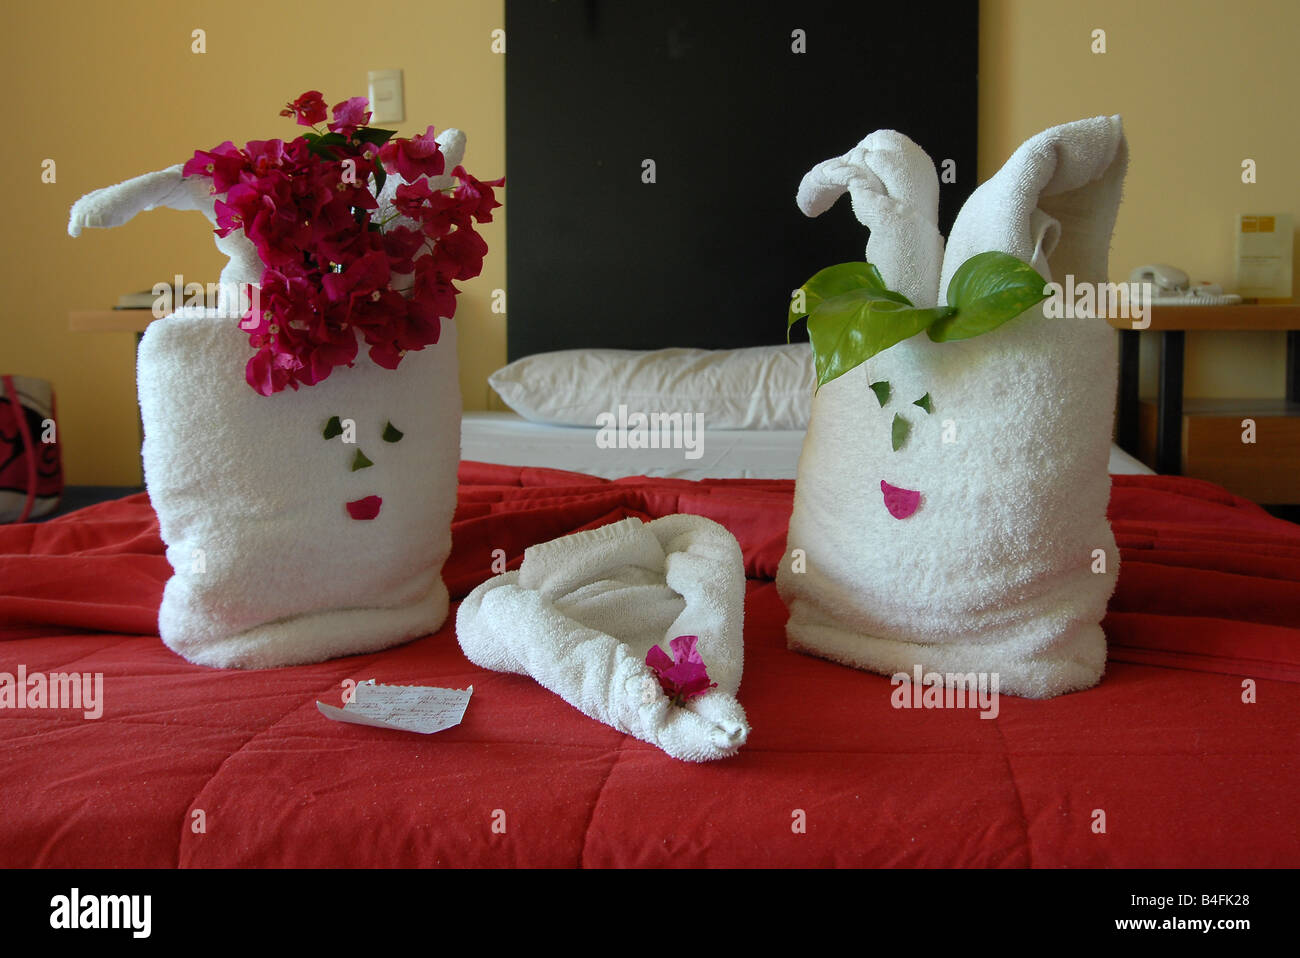 Cuban hotel maid leaves the towels in a design of two rabbits and a heart with a hand written note - Stock Image